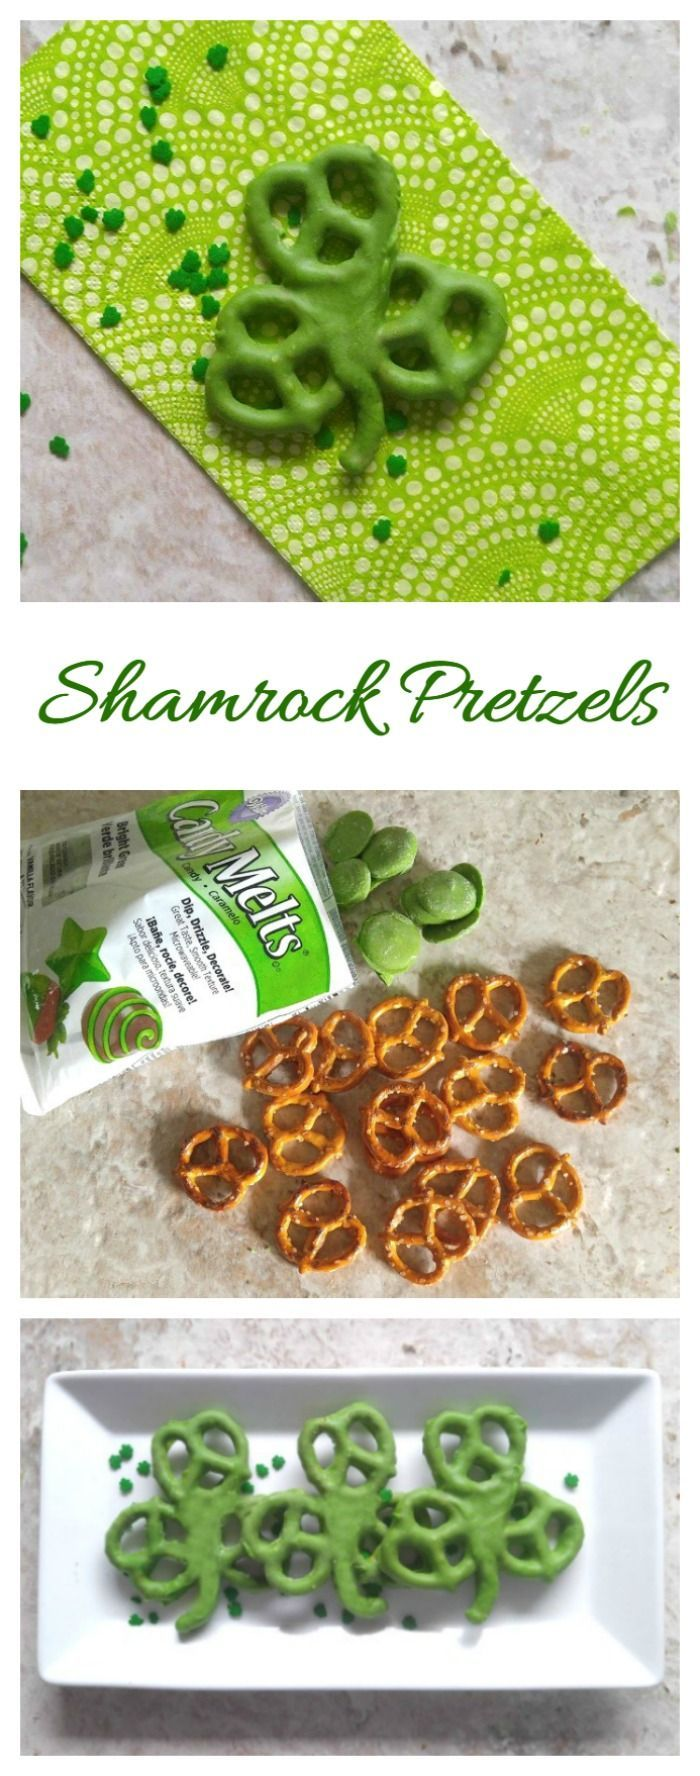 These Shamrock pretzels are a fun sweet and salty treat for St. Patrick's Day. They need only two ingredients! #stpatricksday #shamrock